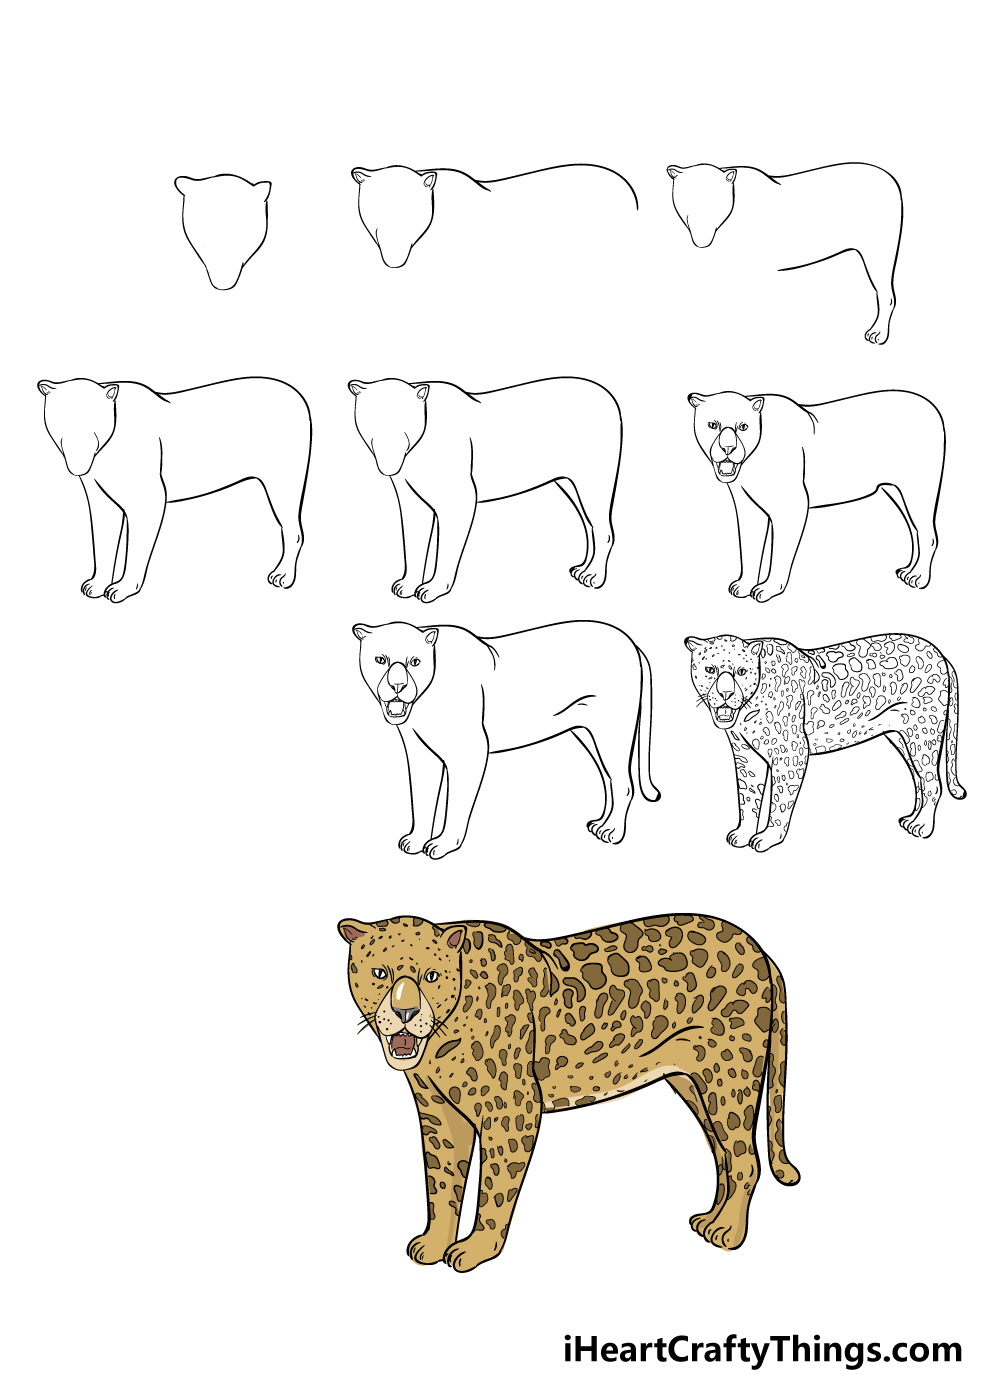 how to draw jaguar in 9 steps